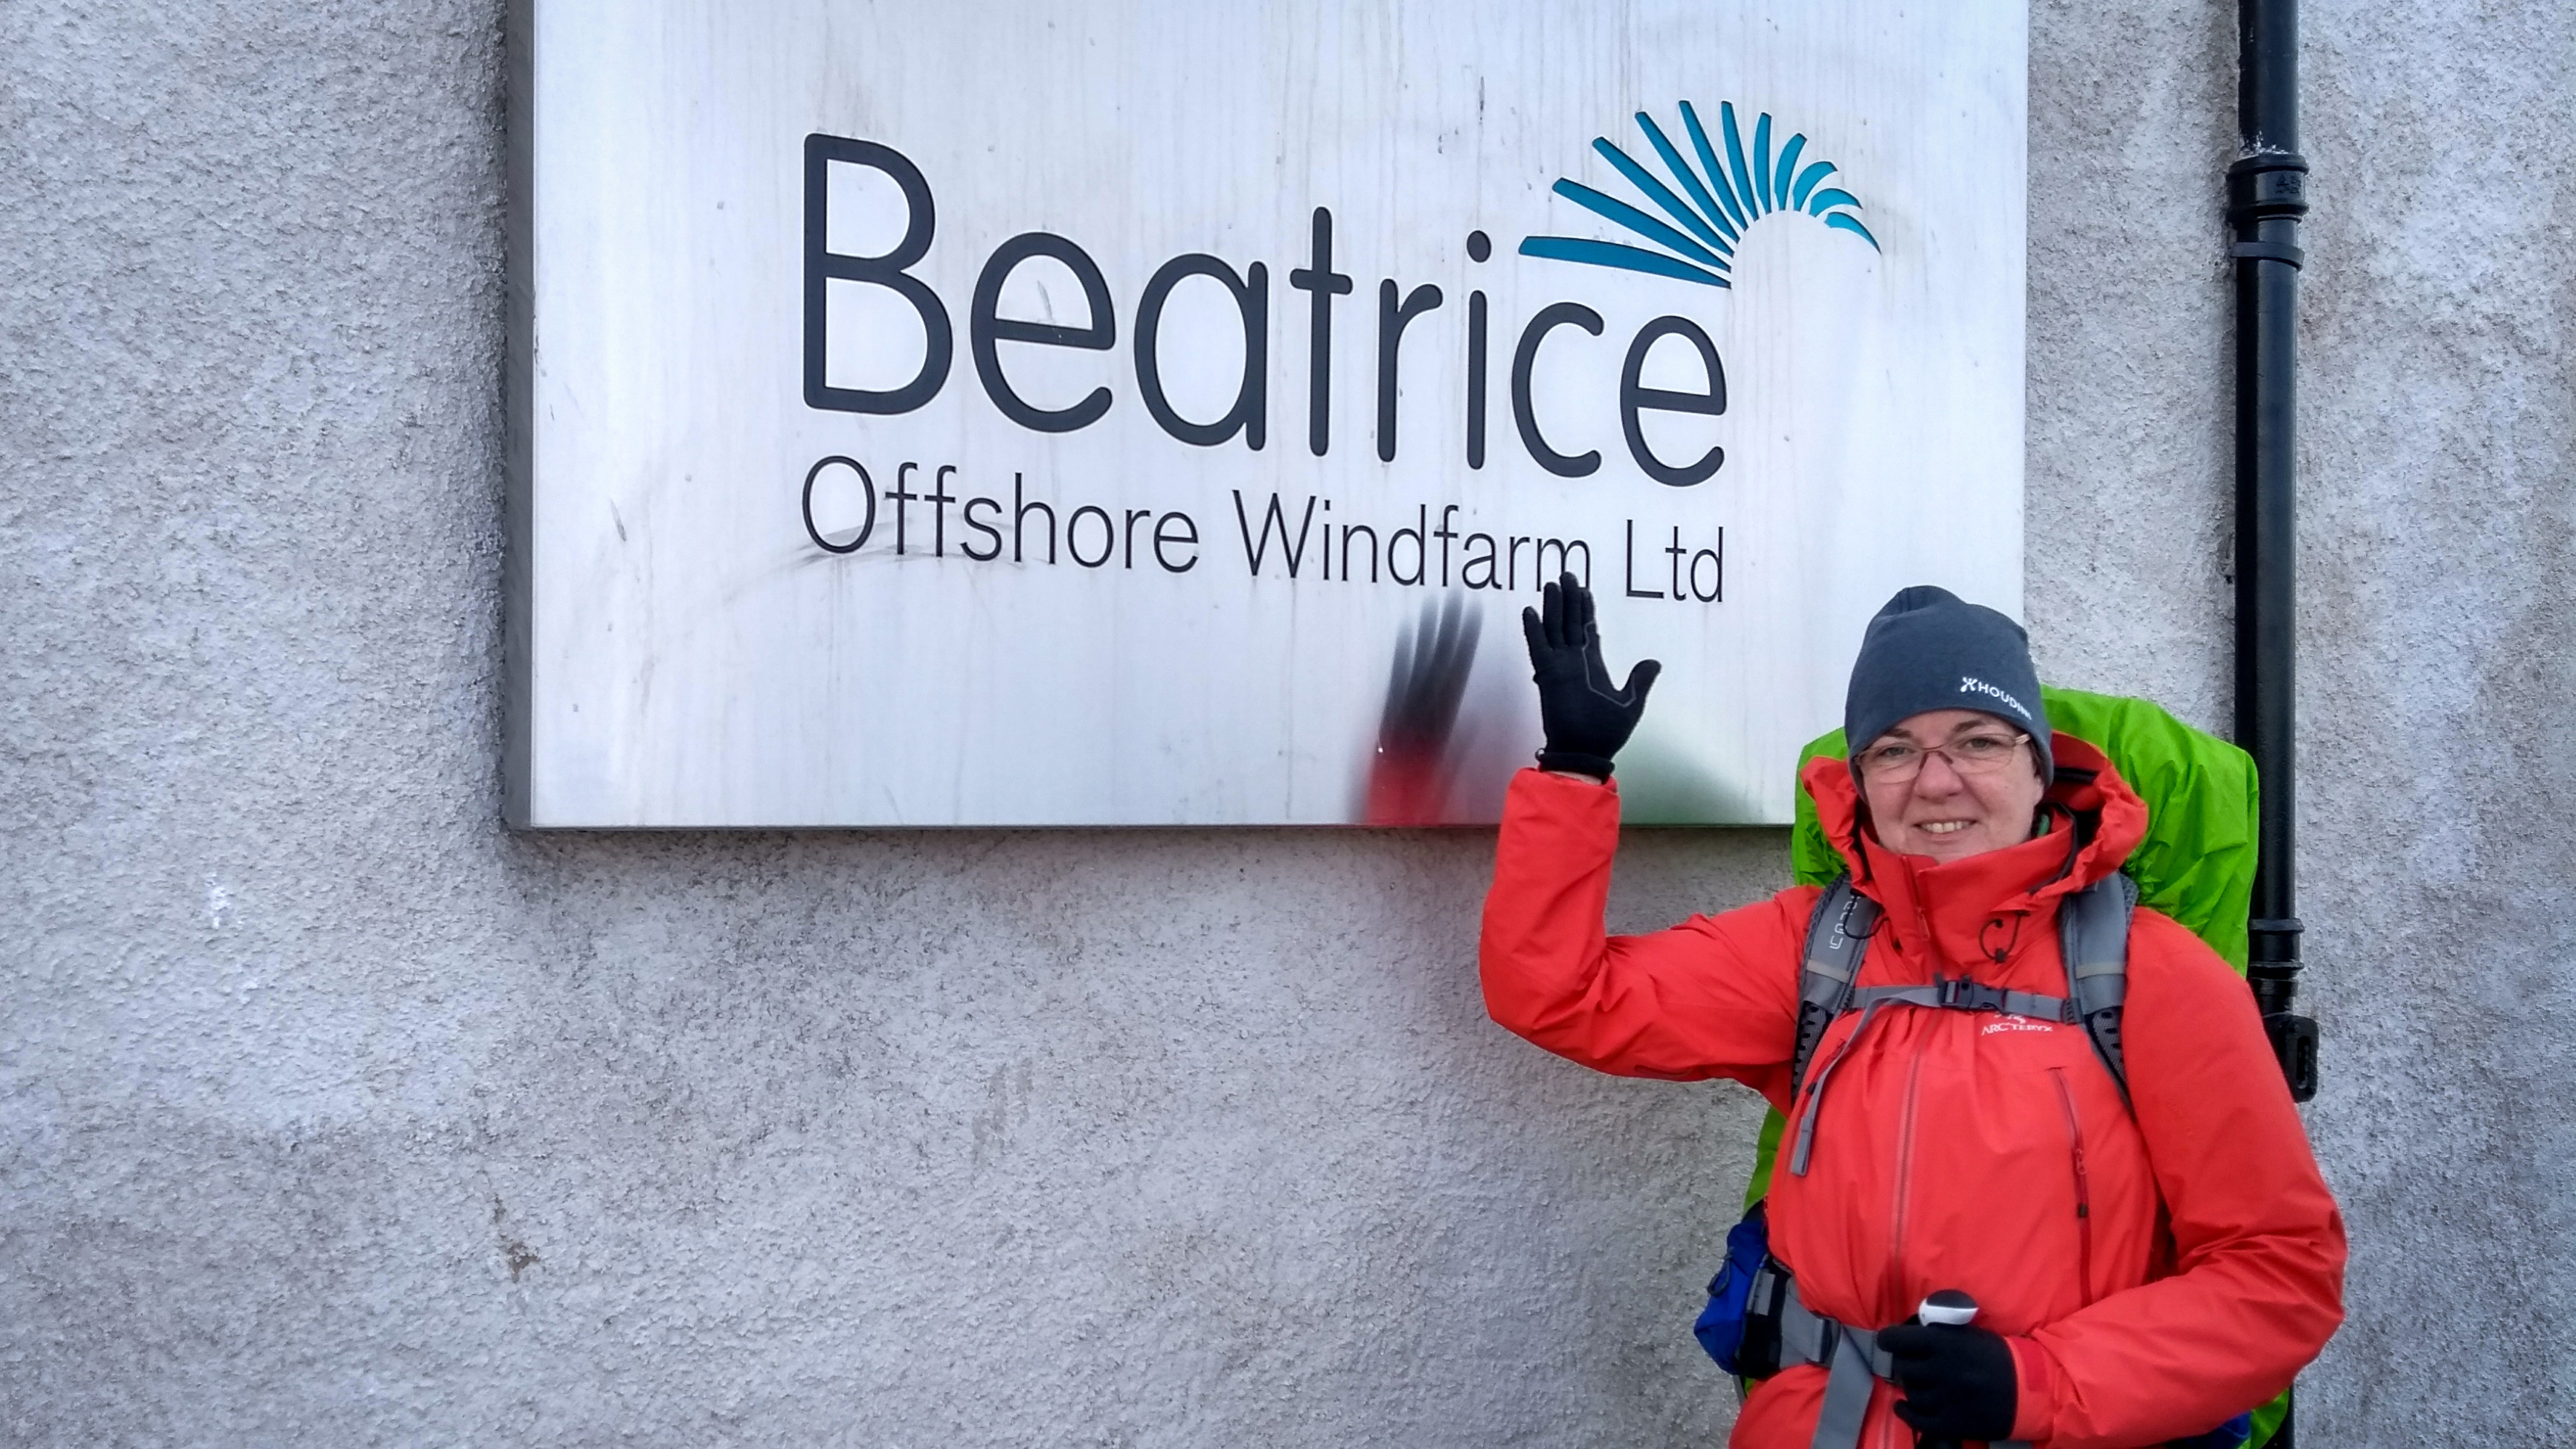 Beatrix vor dem Schild des Beatrice Windpark in Wick